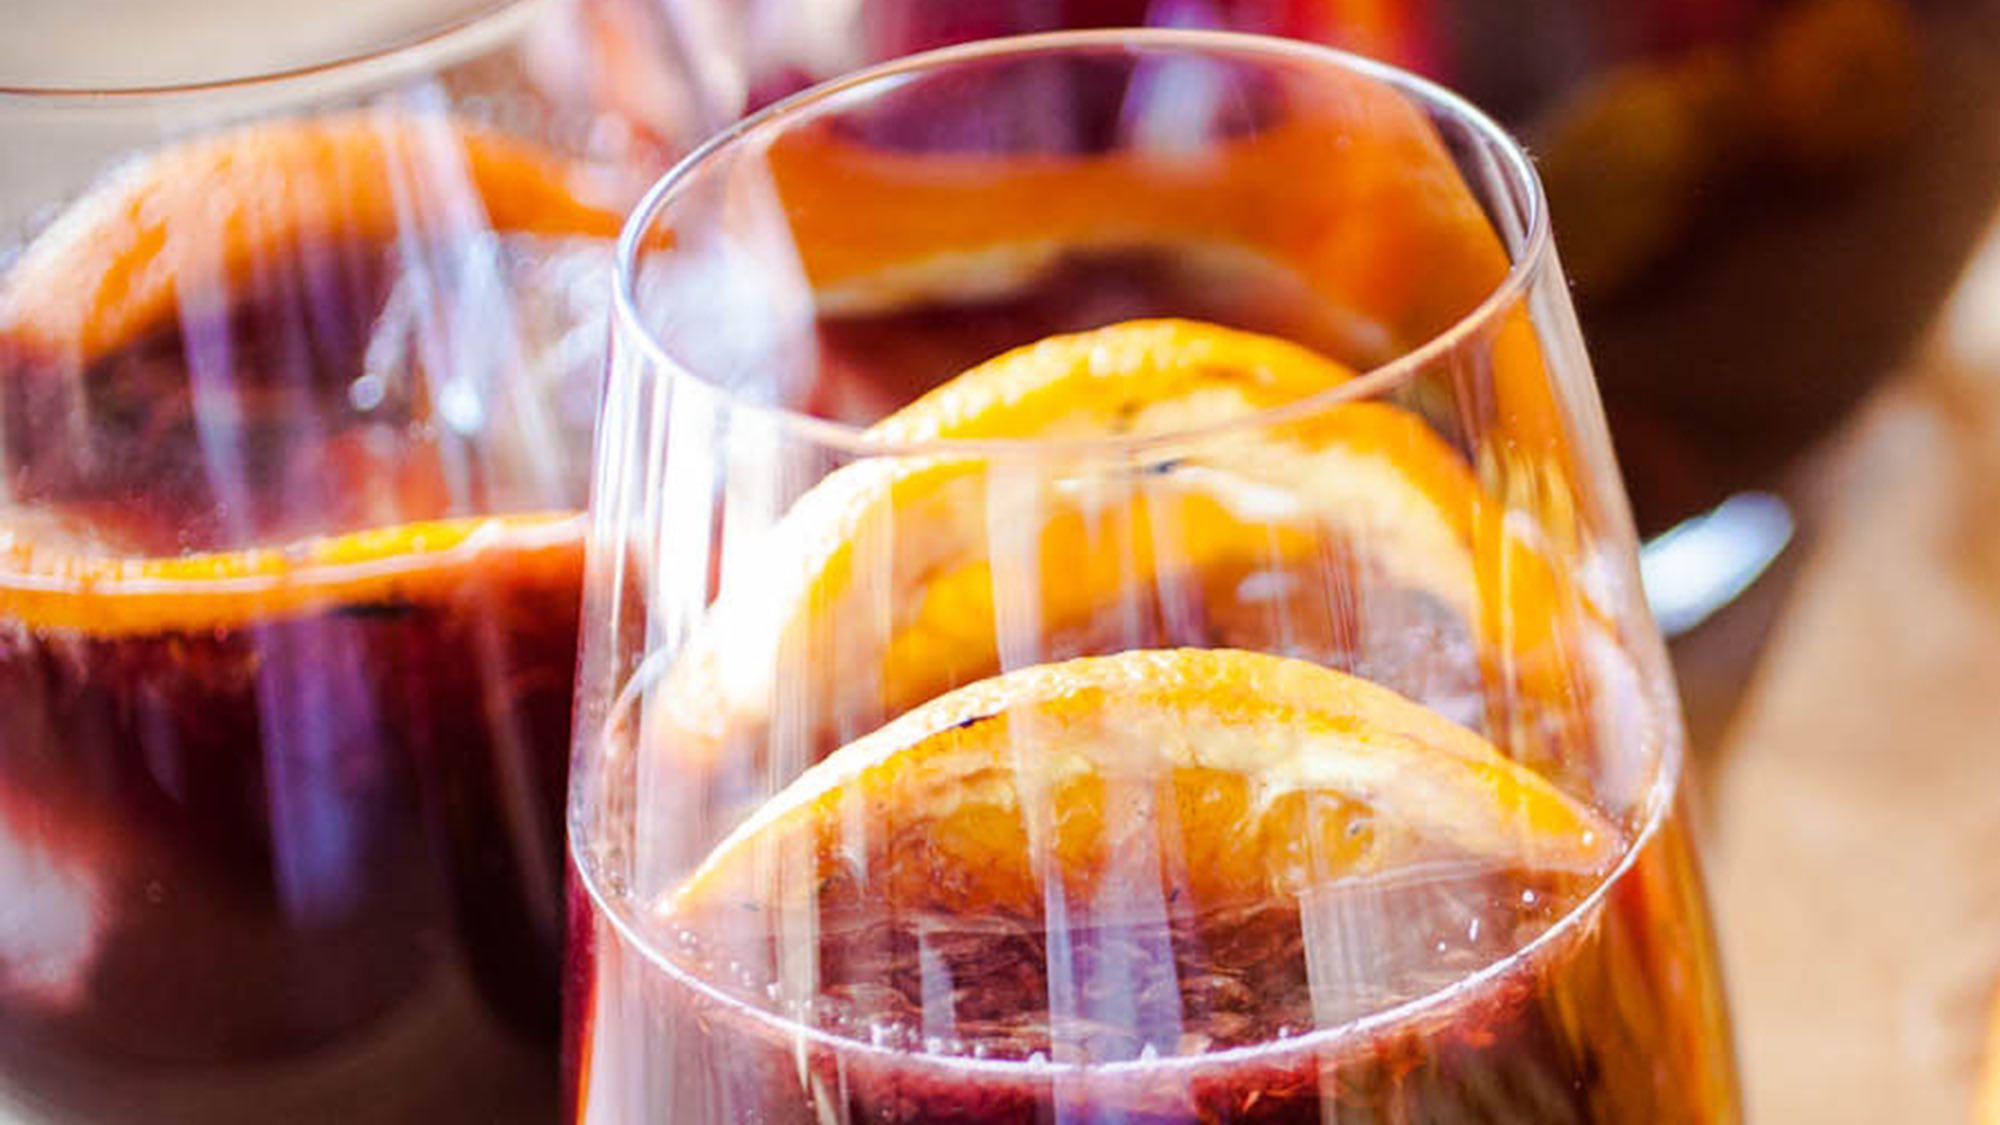 McCormick Summer Sangria with Grilled Fruit